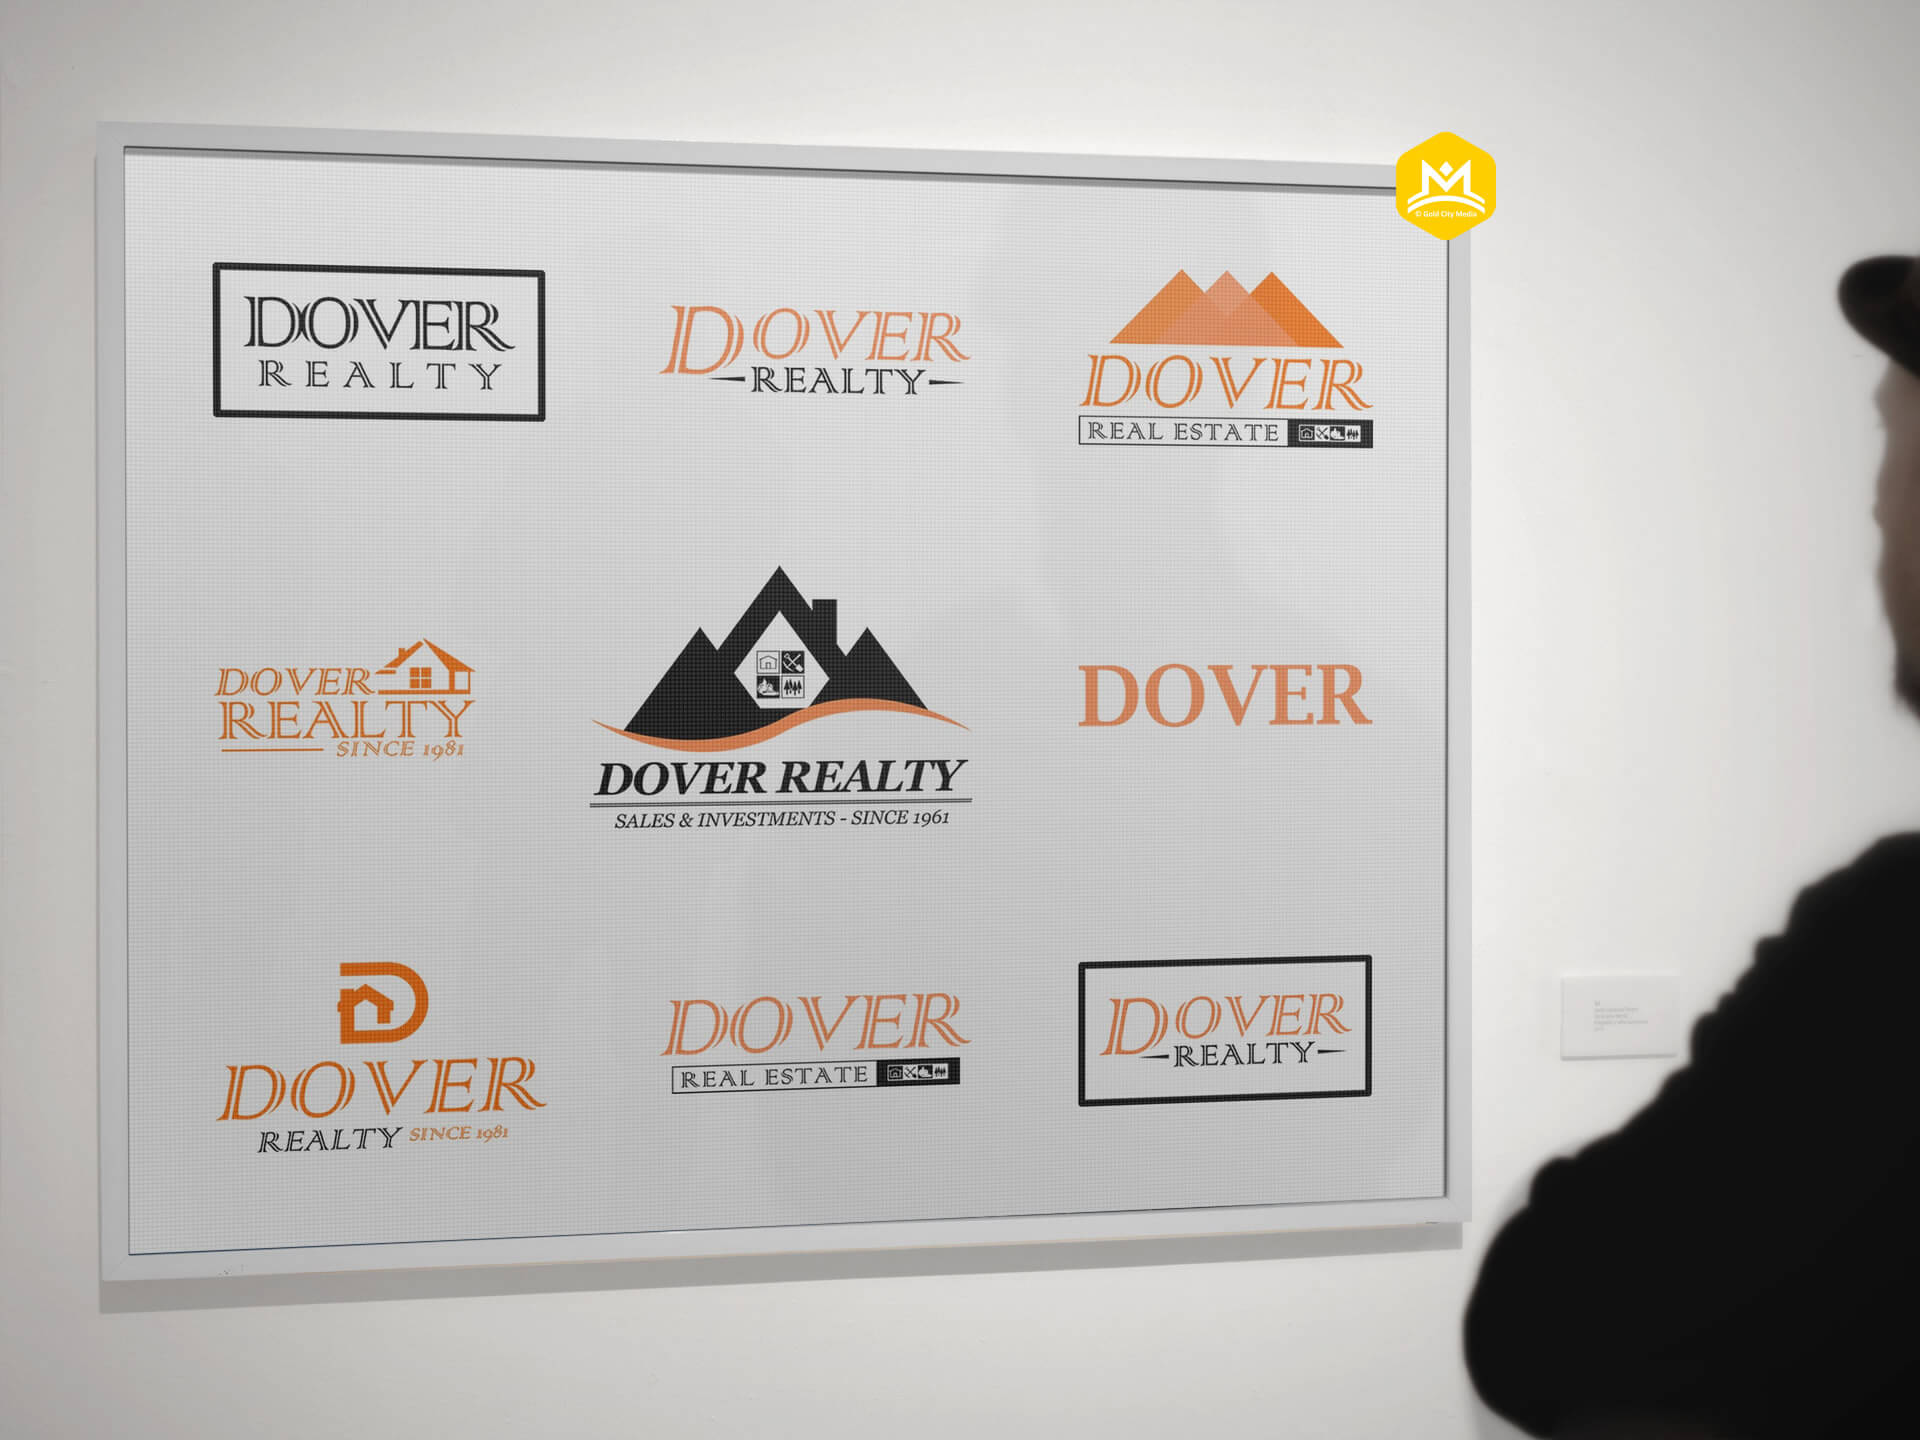 Dover Realty